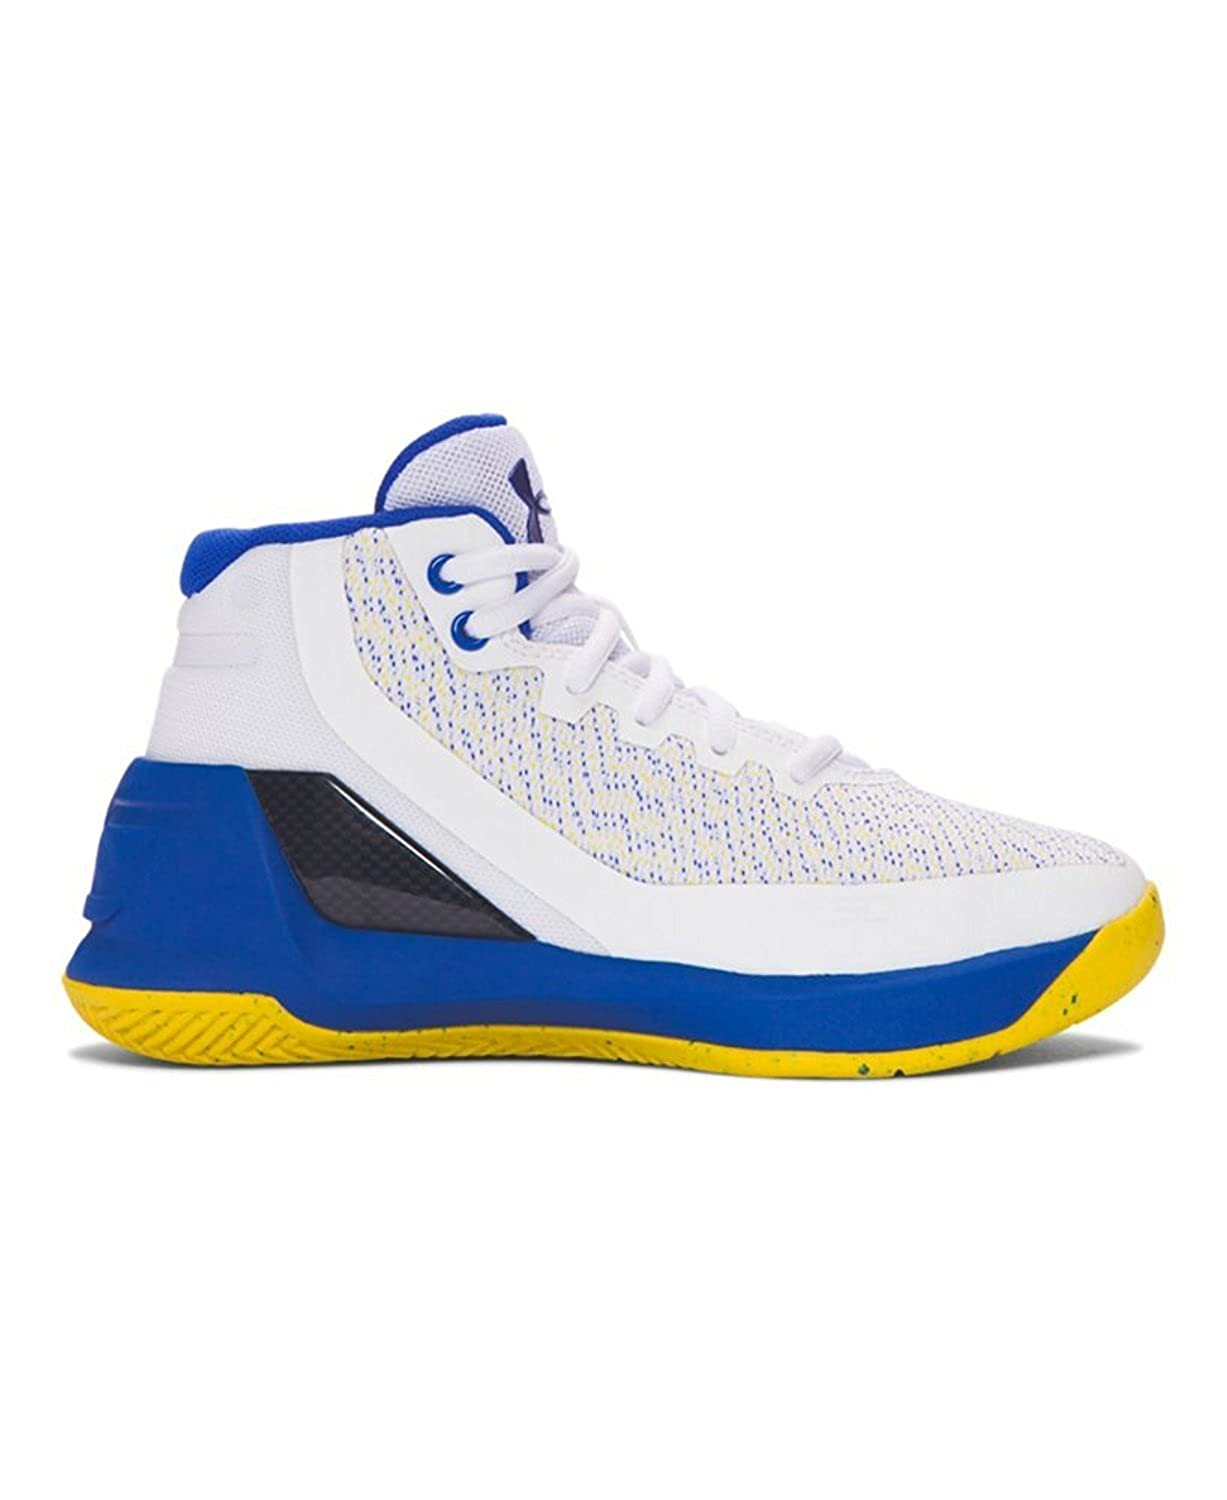 Under Armour Kids 1274061-101 Kids Under Armour Curry 3